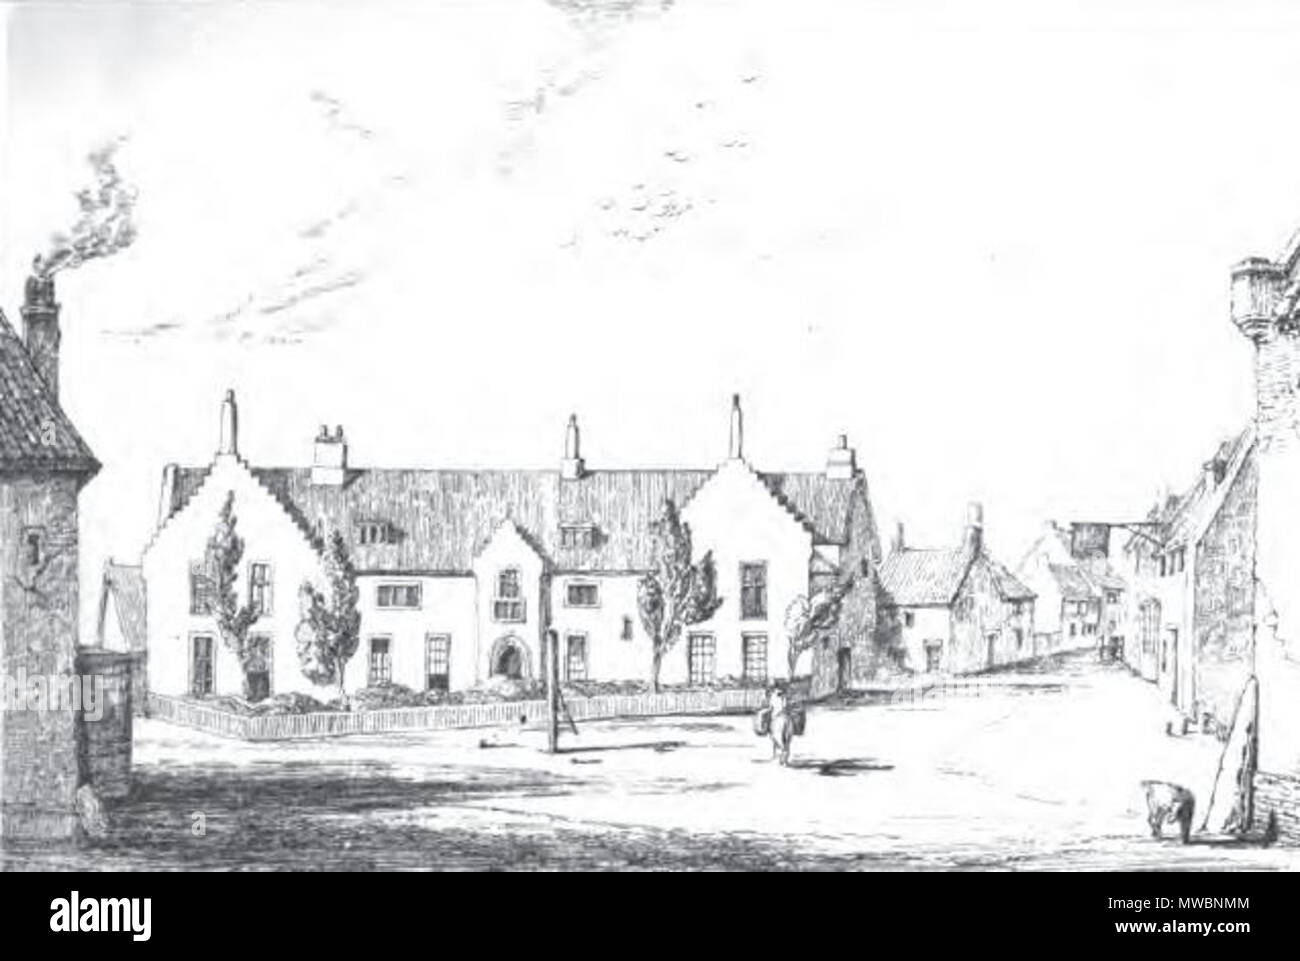 . English: Illustration of Gresham's School, Holt, from John William Burgon's The Life and Times of Sir Thomas Gresham (1839) 'from a sketch made on the spot in 1838'. 1839 engraving from a sketch dated 1838. Unknown 254 Gresham's School, 1838 - Stock Image